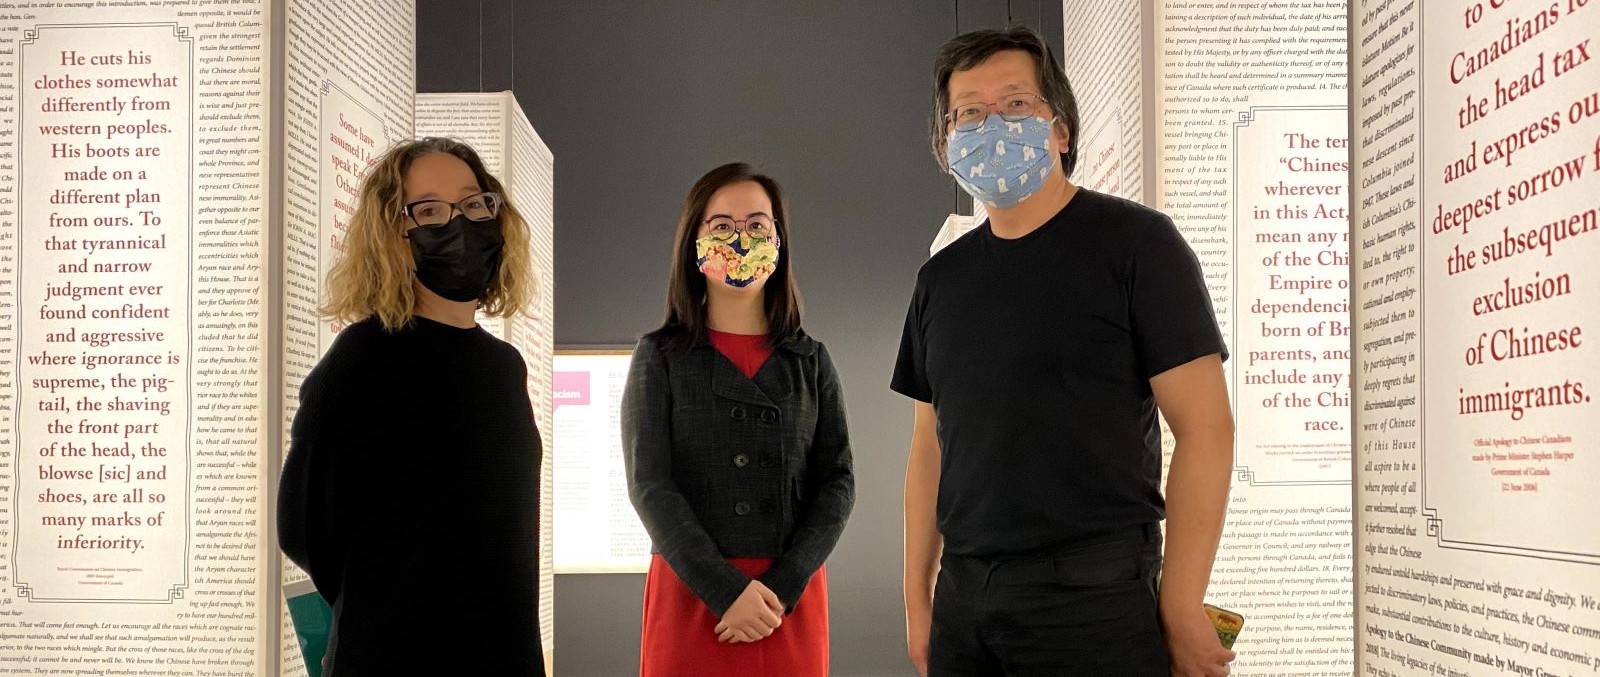 Co-curators, from left to right: Viviane Gosselin, Denise Fong, and Henry Yu posing in the MOV exhibit.